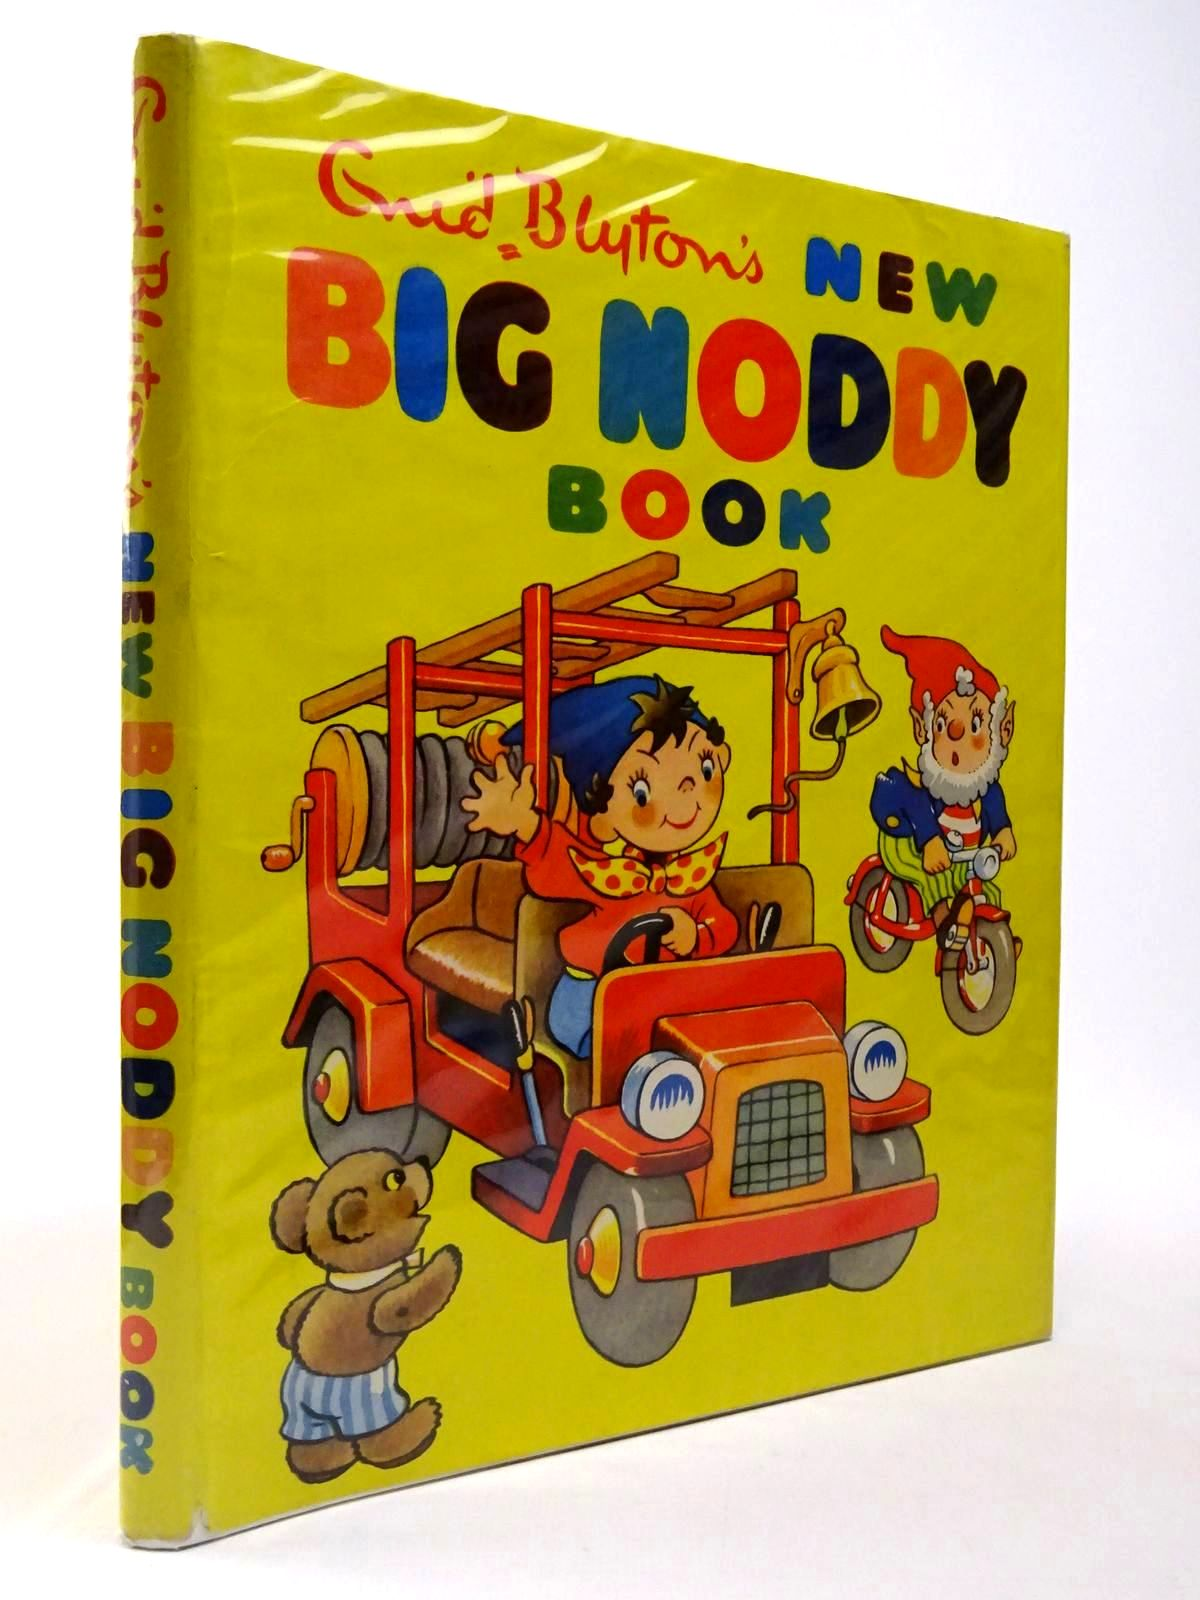 Photo of THE NEW BIG NODDY BOOK written by Blyton, Enid published by Sampson Low, Marston & Co. Ltd., Dennis Dobson (STOCK CODE: 2129949)  for sale by Stella & Rose's Books